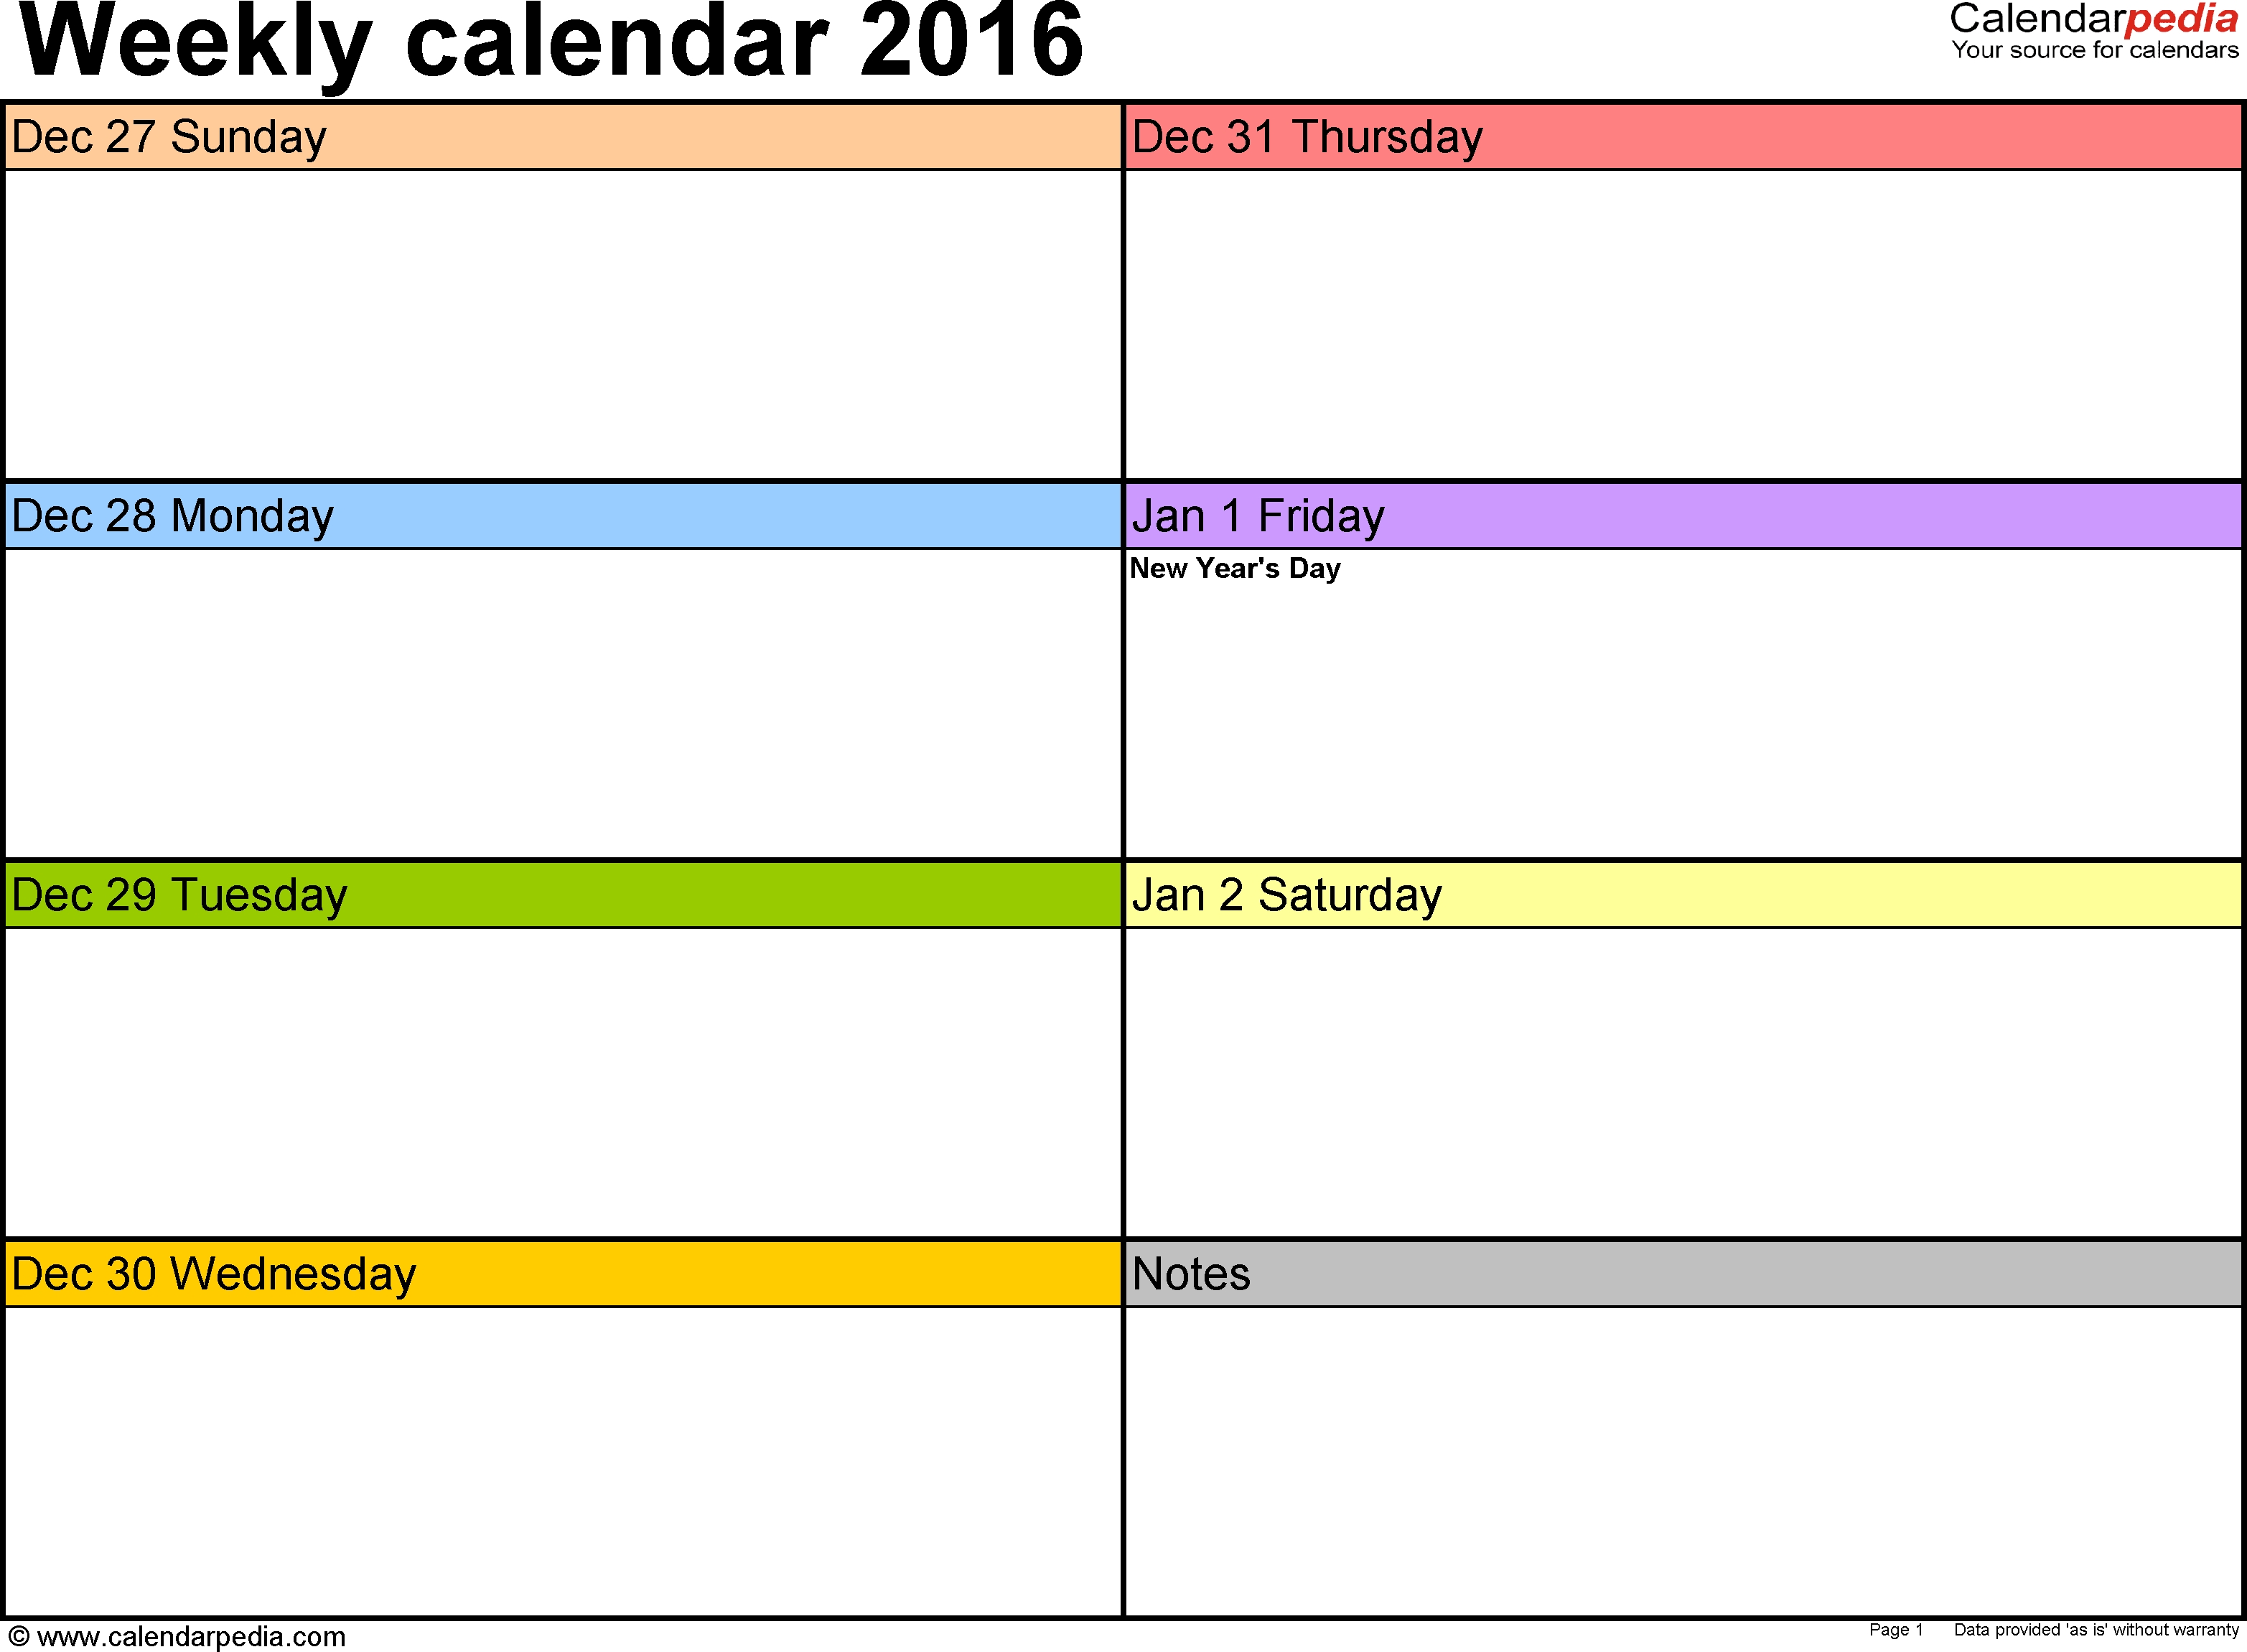 Weekly Calendar 2016 For Word - 12 Free Printable Templates  7 Days Weekly Planner Word Template